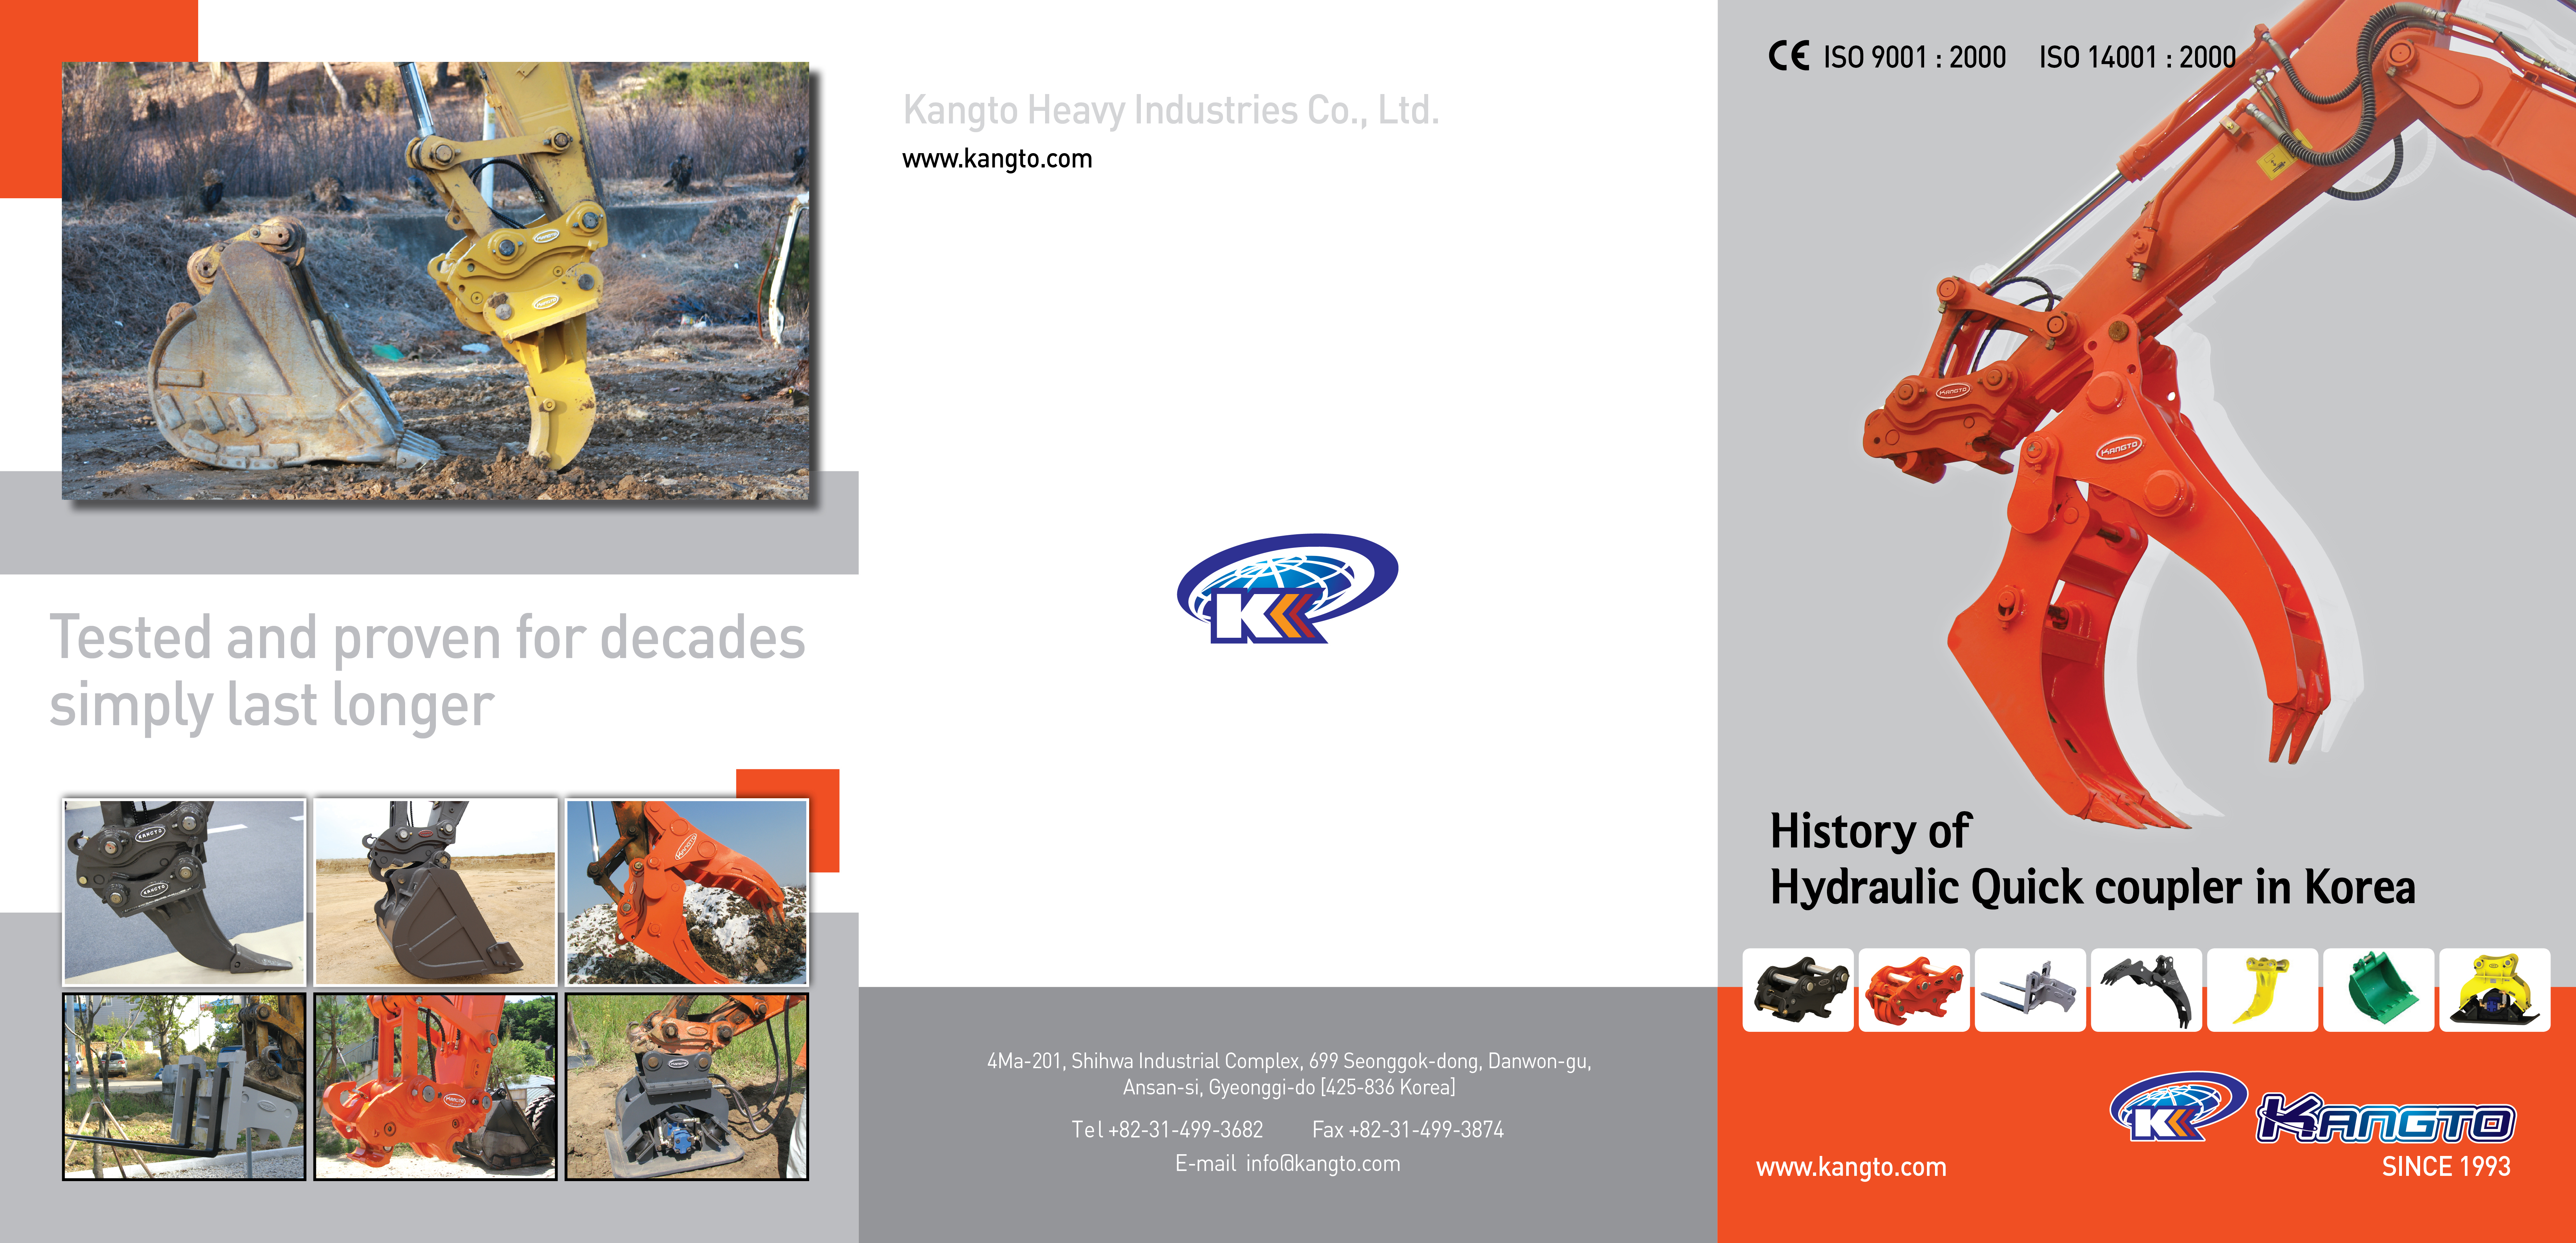 KANGTO HEAVY INDUSTRIES CO., LTD. Main Image